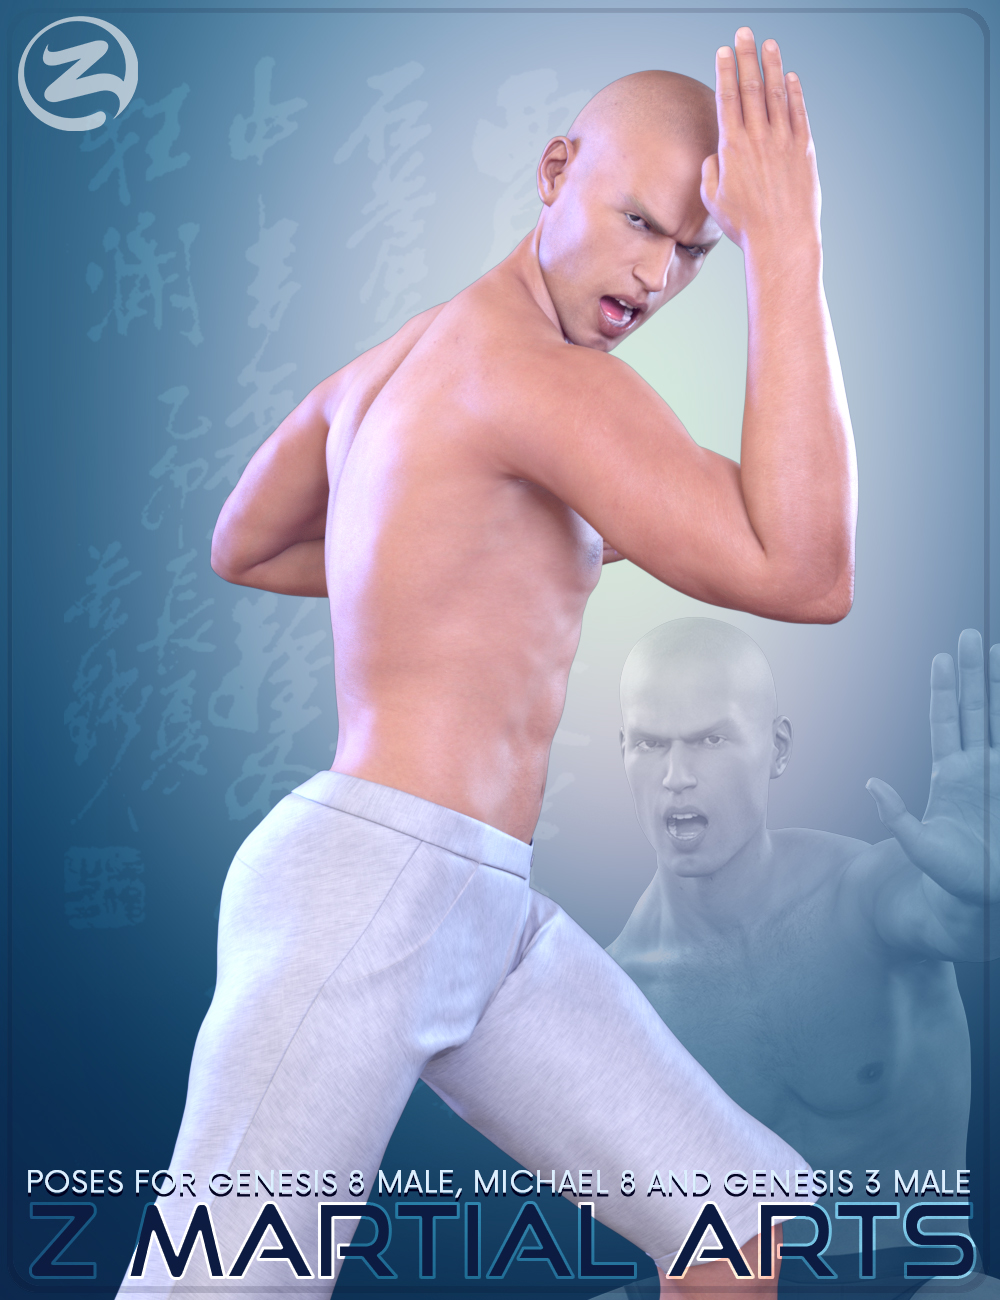 Z Martial Arts - Poses for Genesis 3 Male, Genesis 8 Male and Michael 8 by: Zeddicuss, 3D Models by Daz 3D